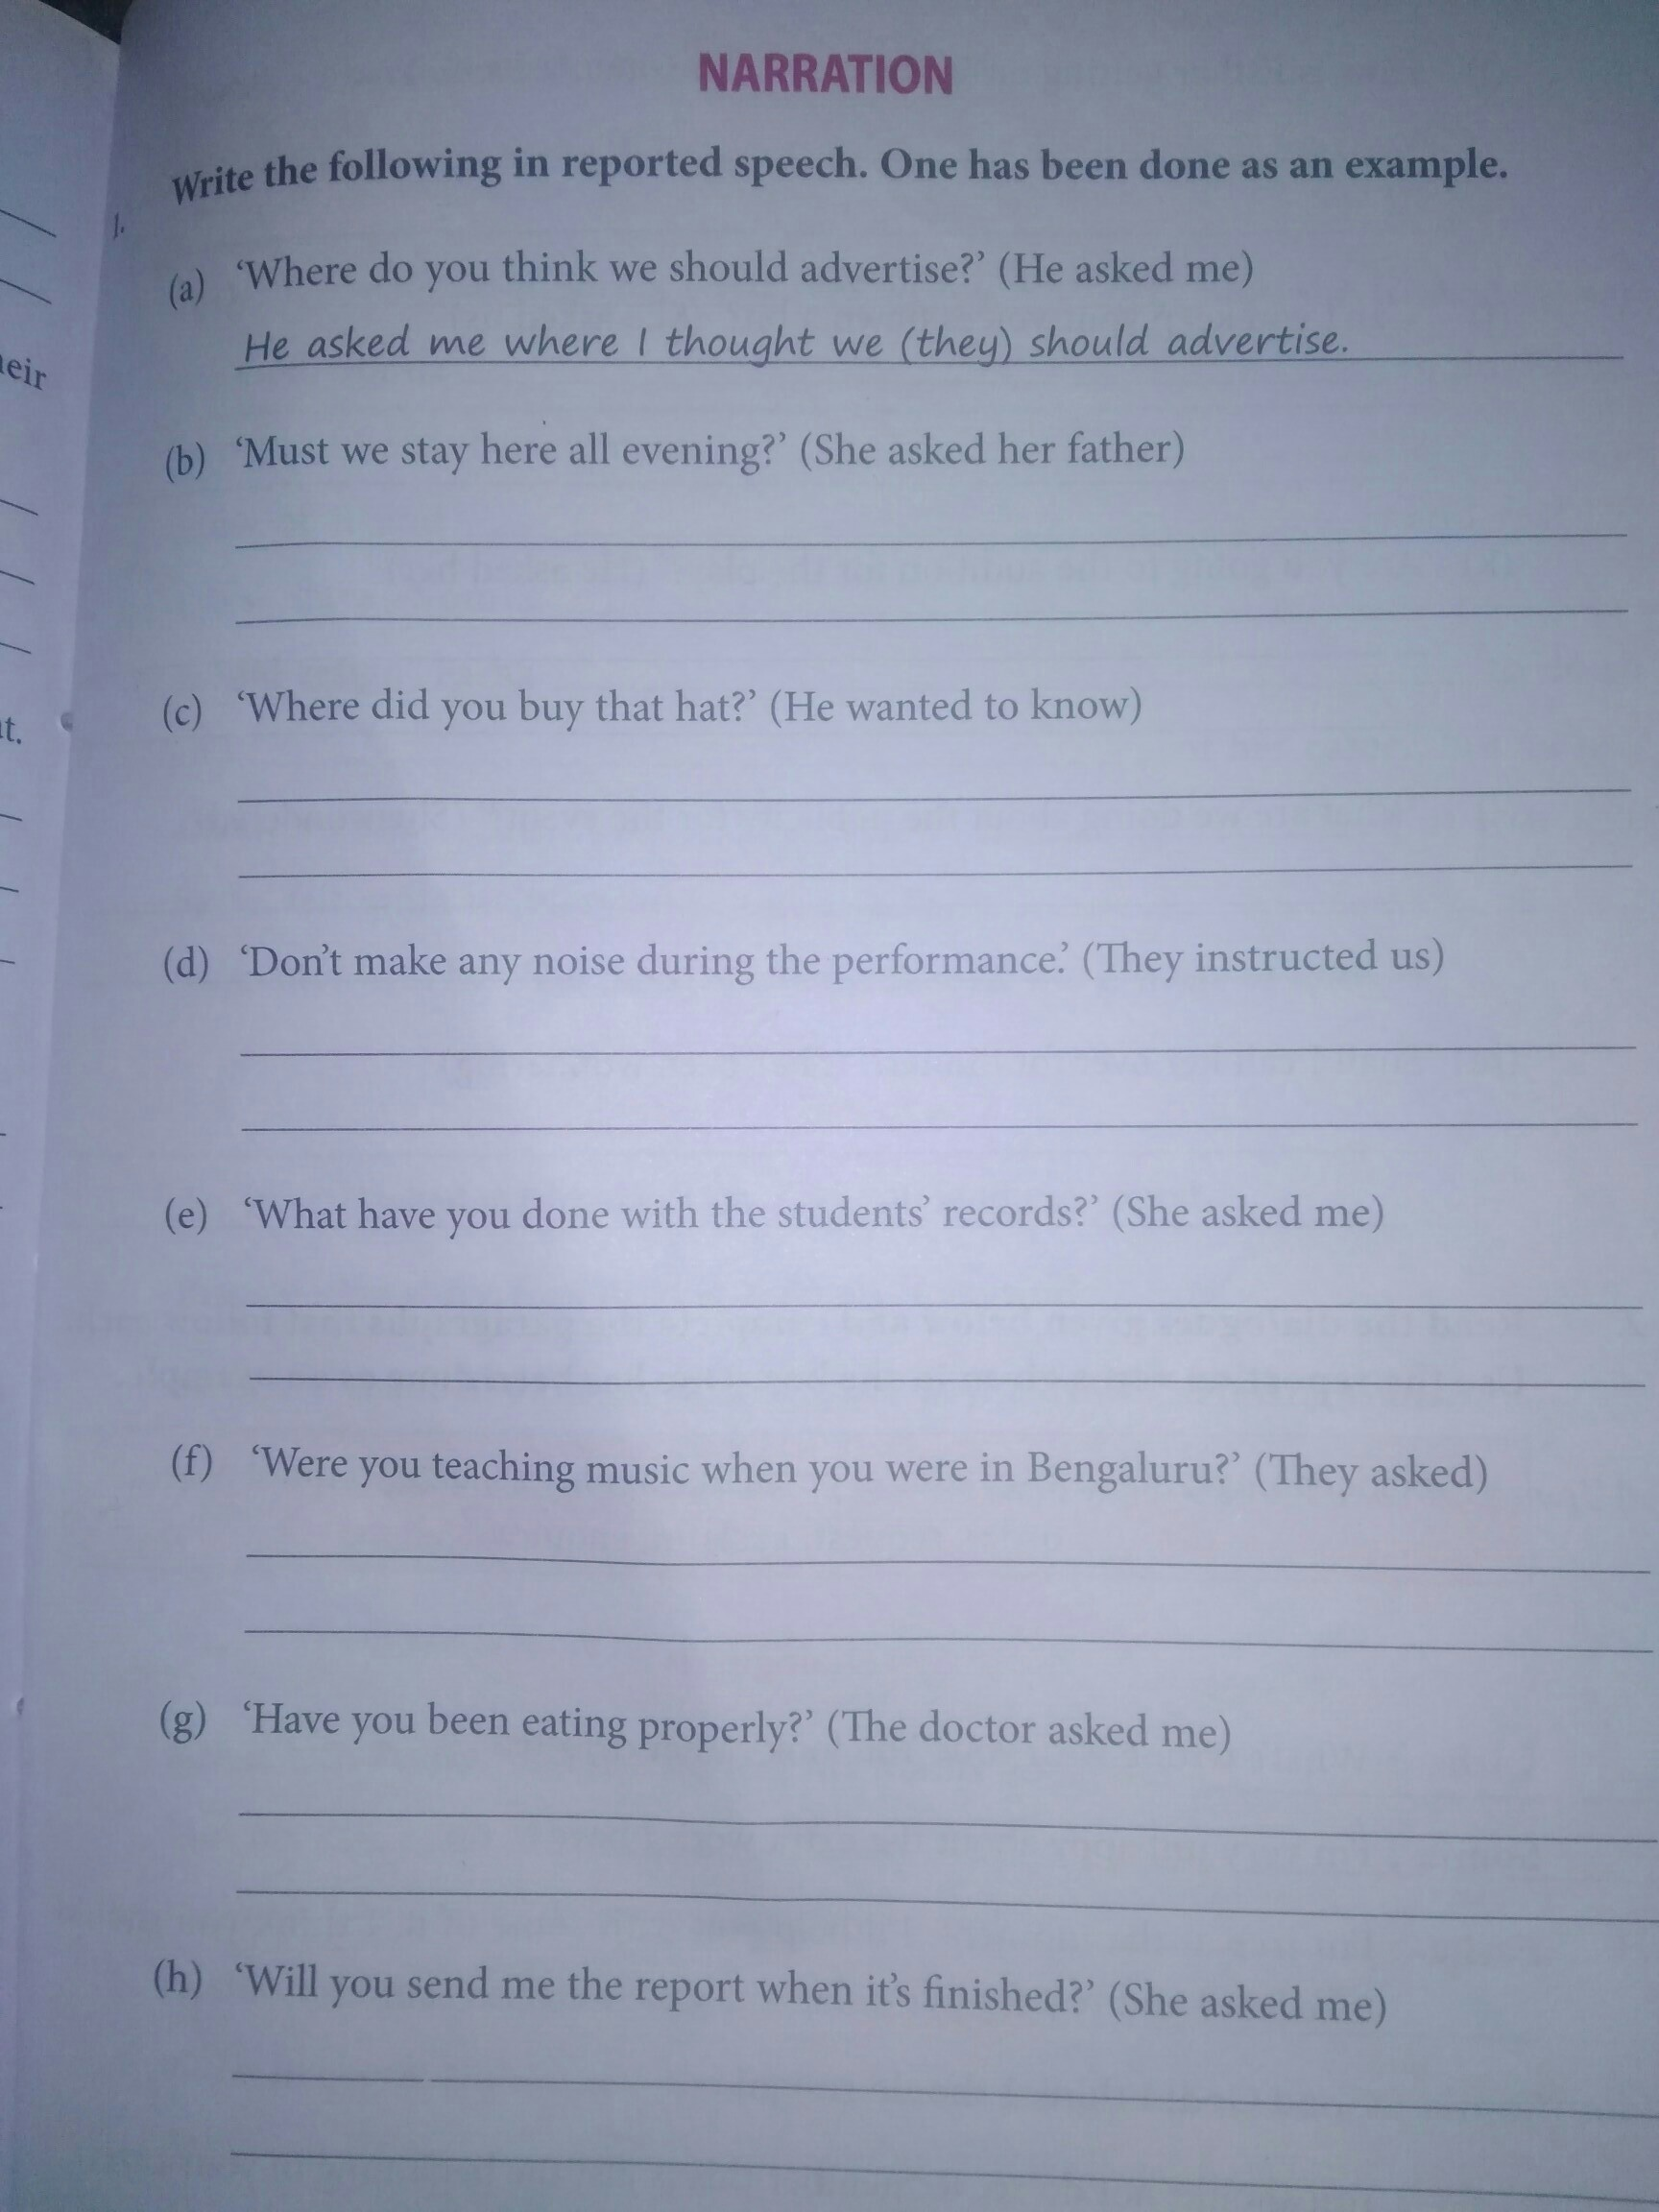 Hi Guyspls Give Me The Unsolved Worksheet Or Exercise Of